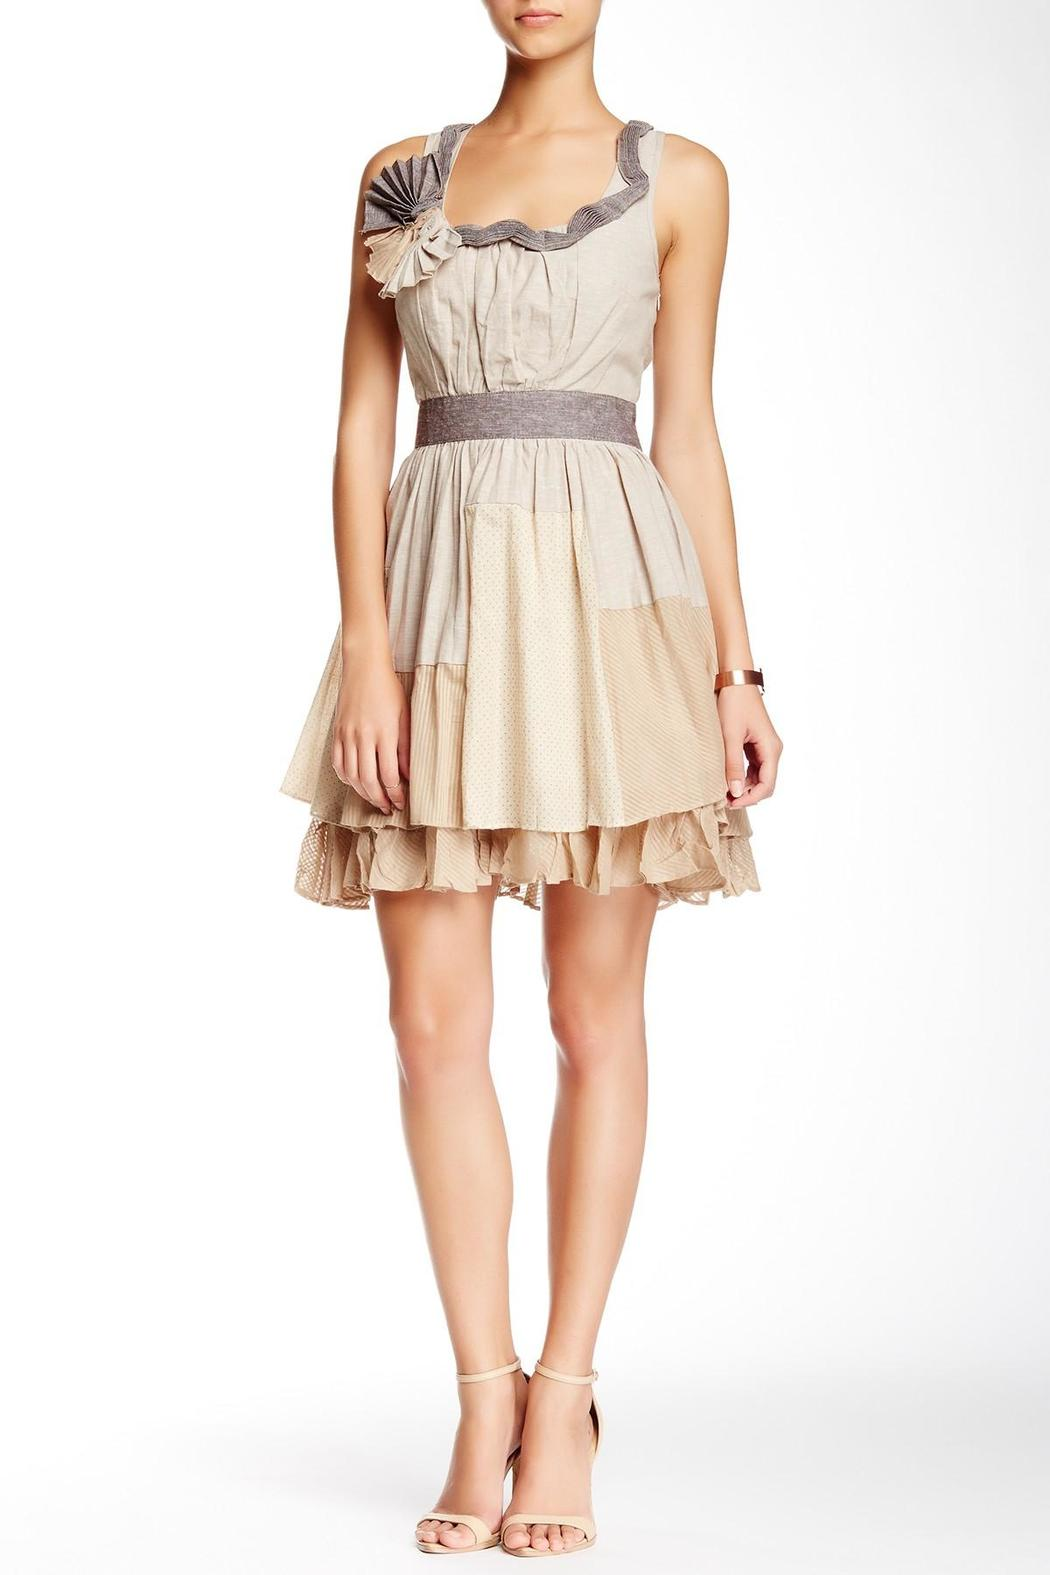 Ryu Beige Patched Dress - Main Image